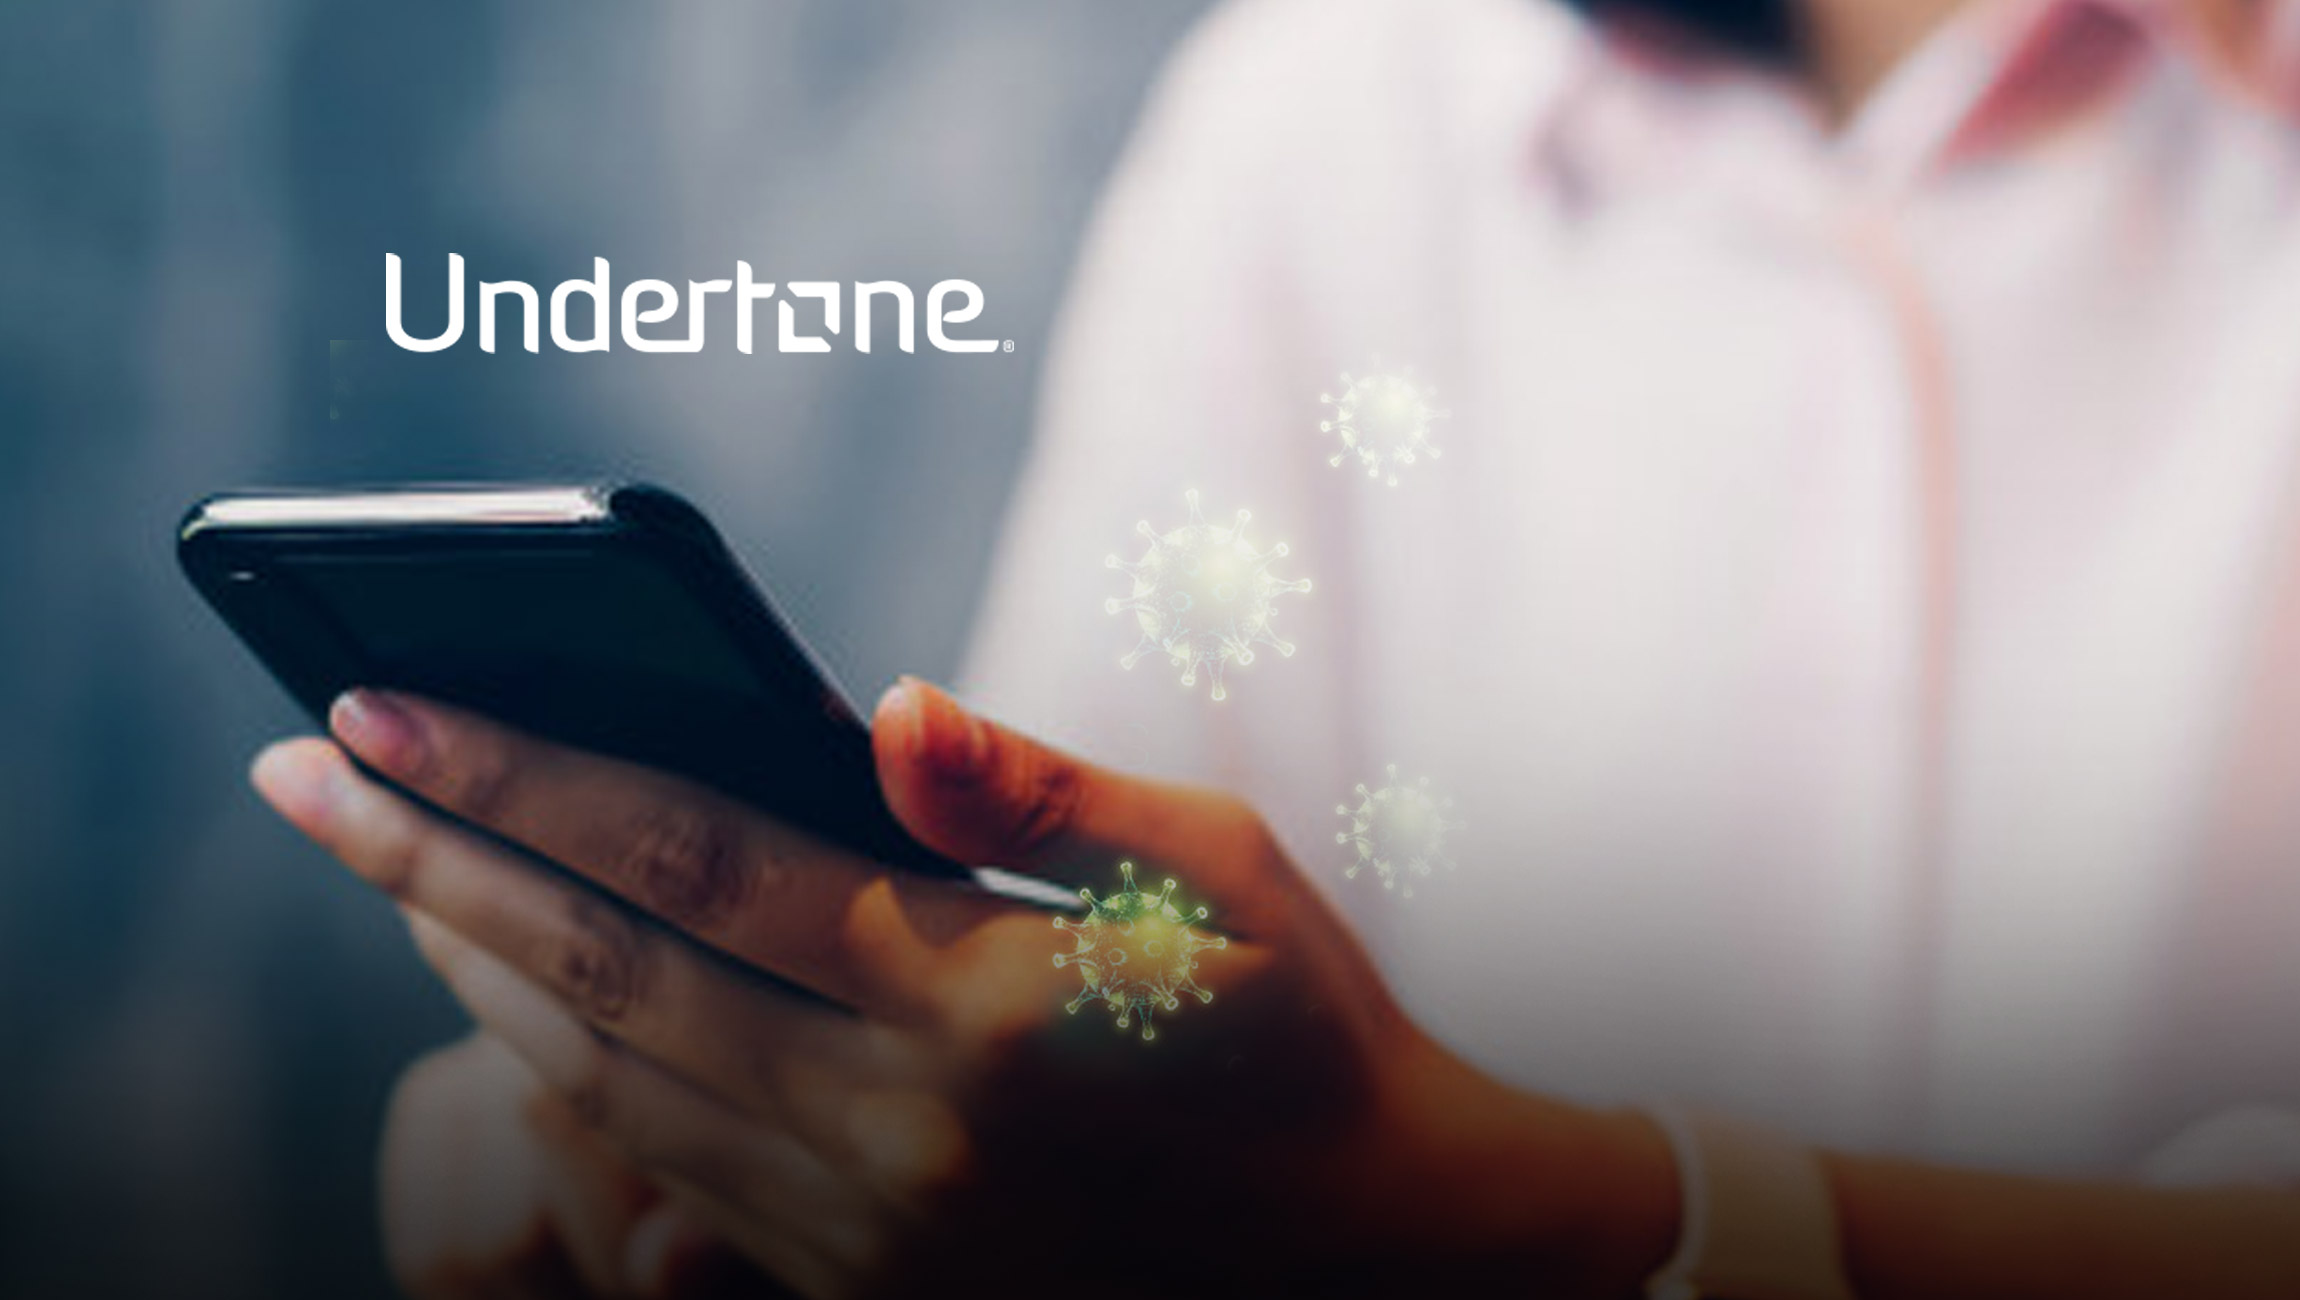 Undertone to Bring Its High-Impact Mobile Ad Units to the Ad Council's #AloneTogether COVID-19 Campaign